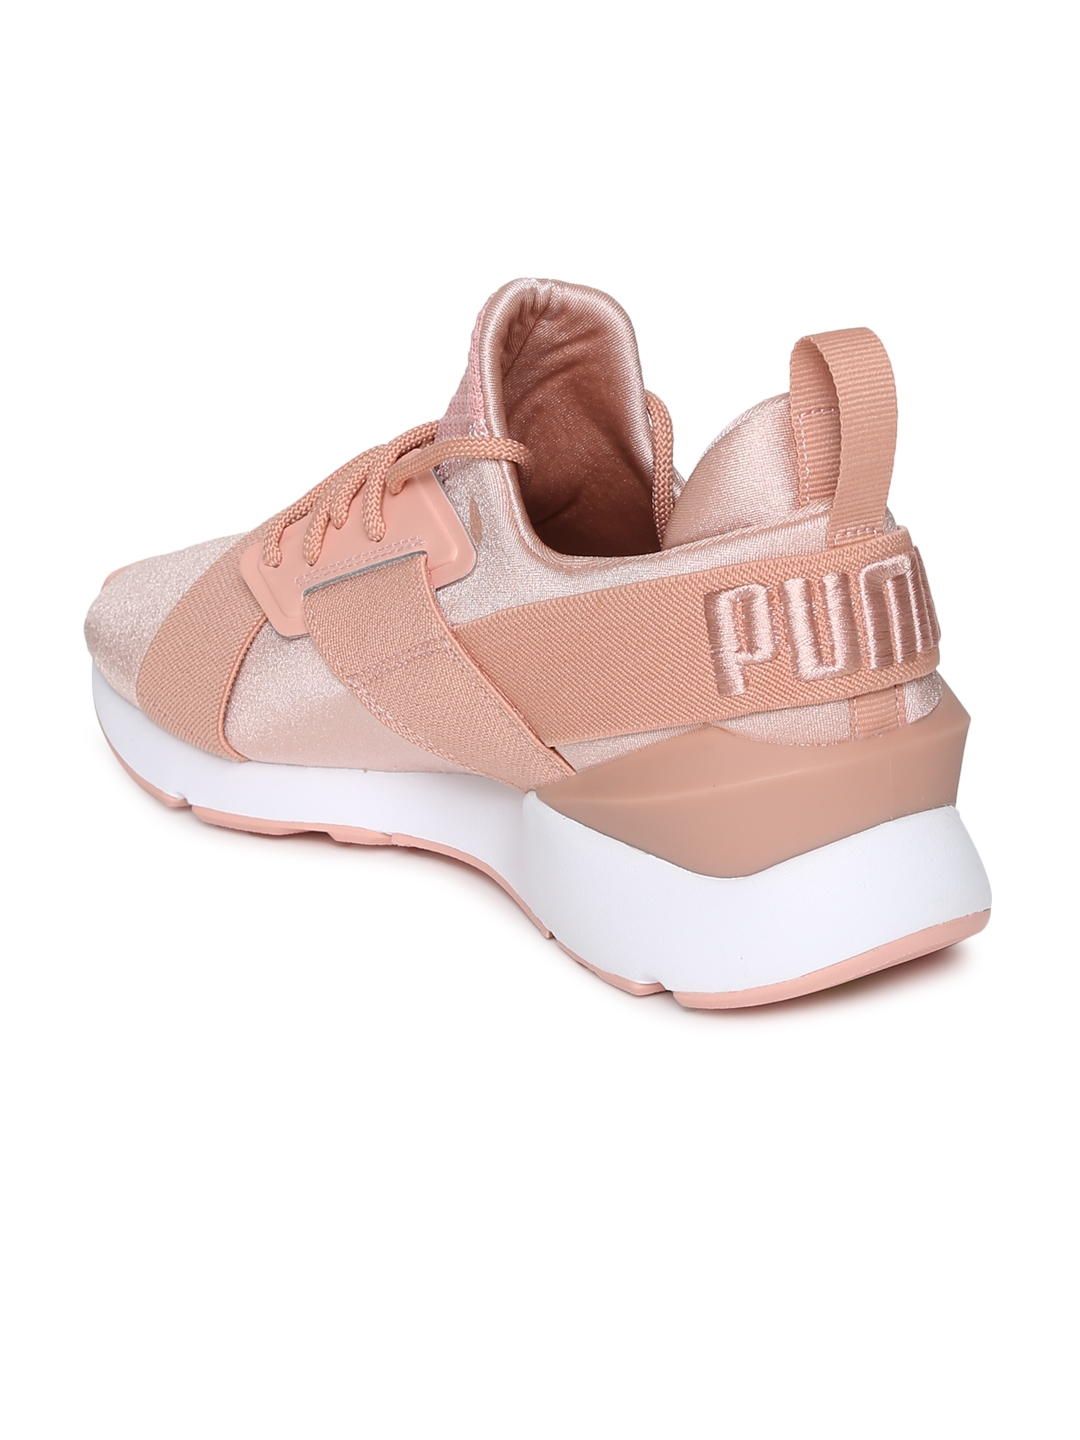 d90dd03f3958 Buy Puma Women Pink Muse Satin EP Sneakers - Casual Shoes for Women ...